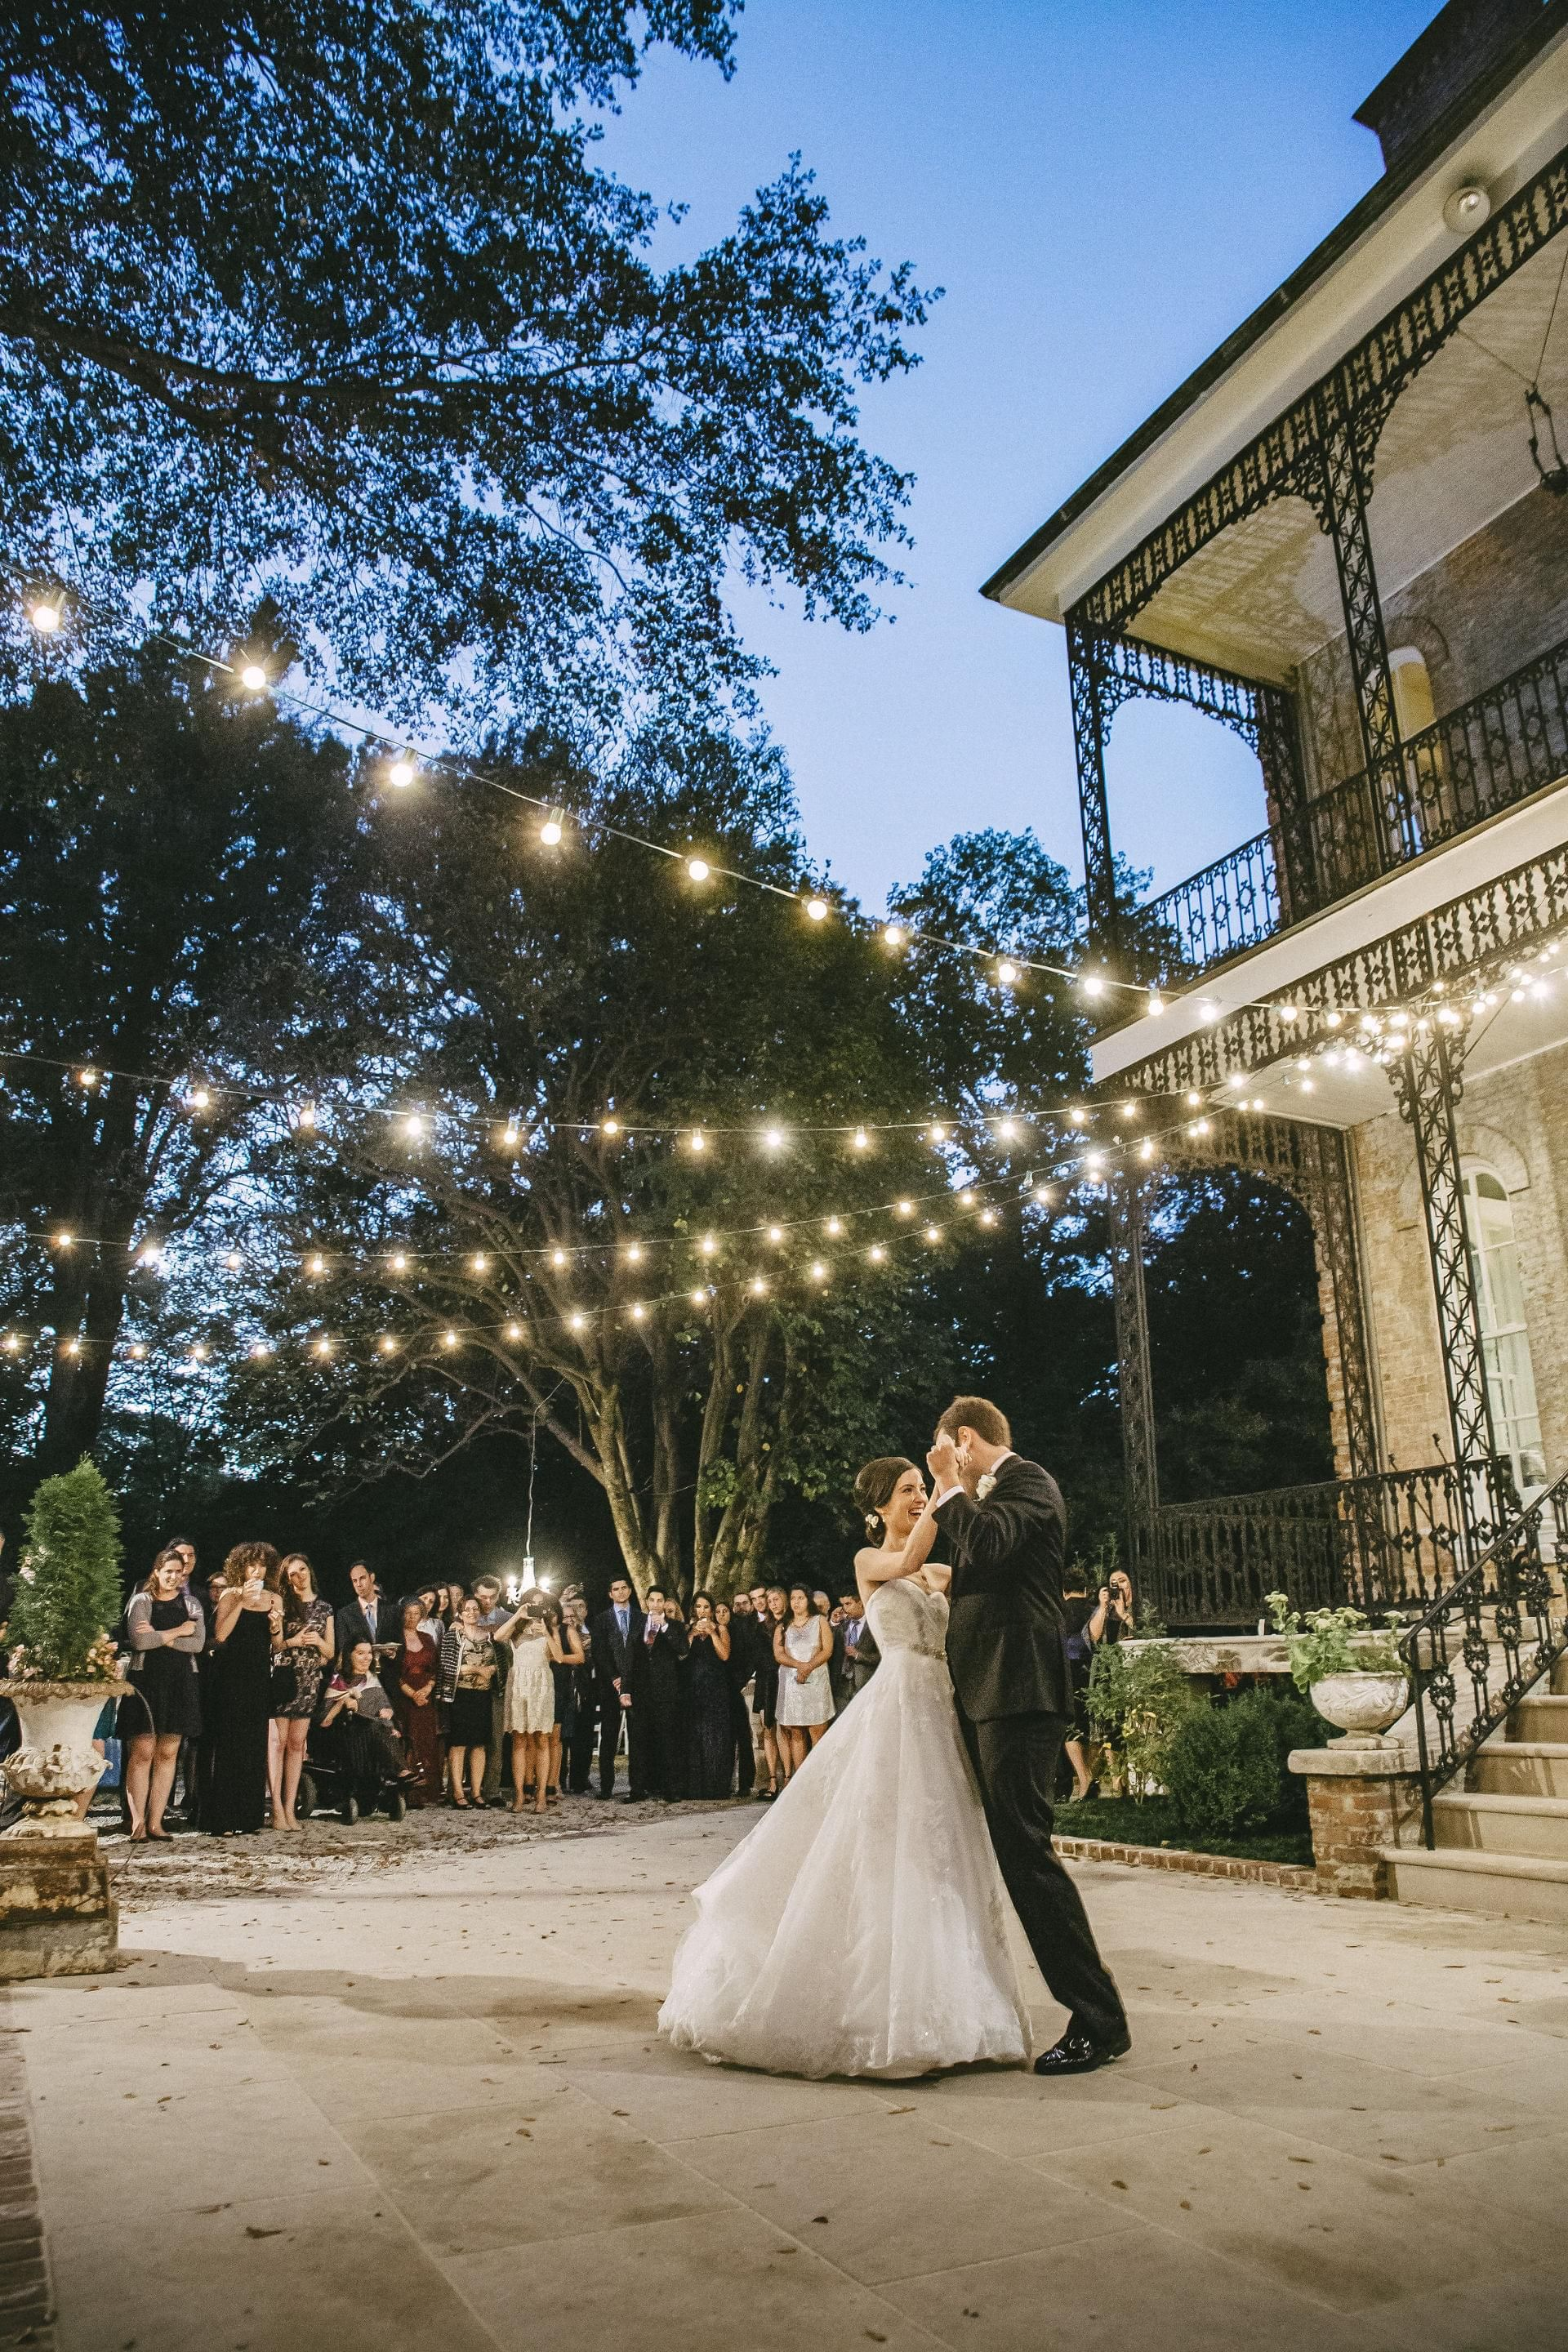 Grand Romantic Fete At Annesdale Mansion Memphis Tn Mansion Wedding Venues Wedding Vendors Mansion Wedding